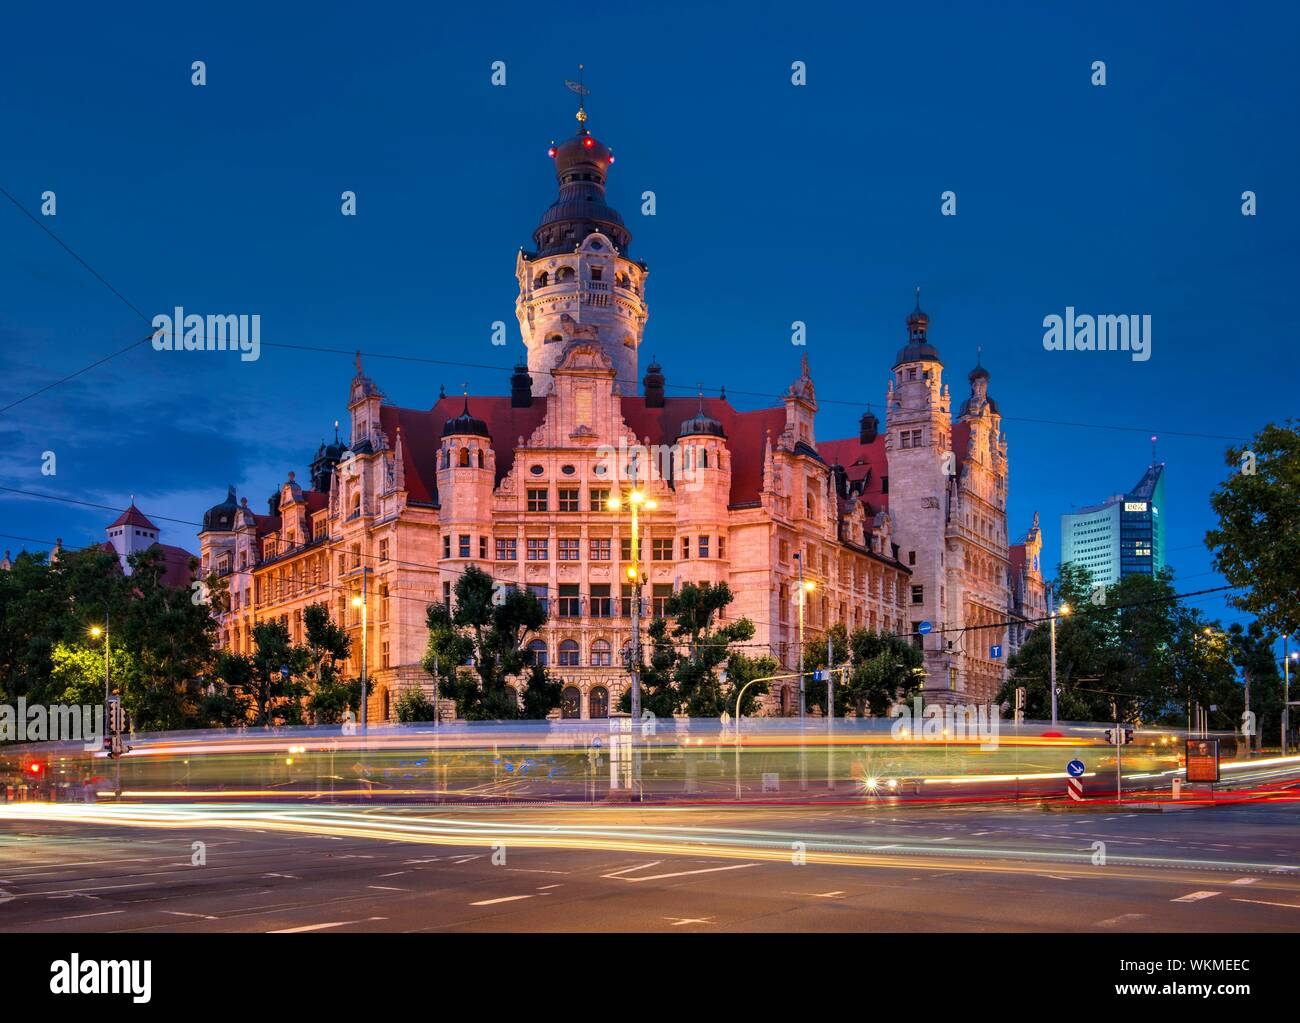 The New Town Hall On Martin Luther Ring The City Tower In The Back Night Shot Light Tracks Of The Tram Leipzig Saxony Germany Stock Photo Alamy